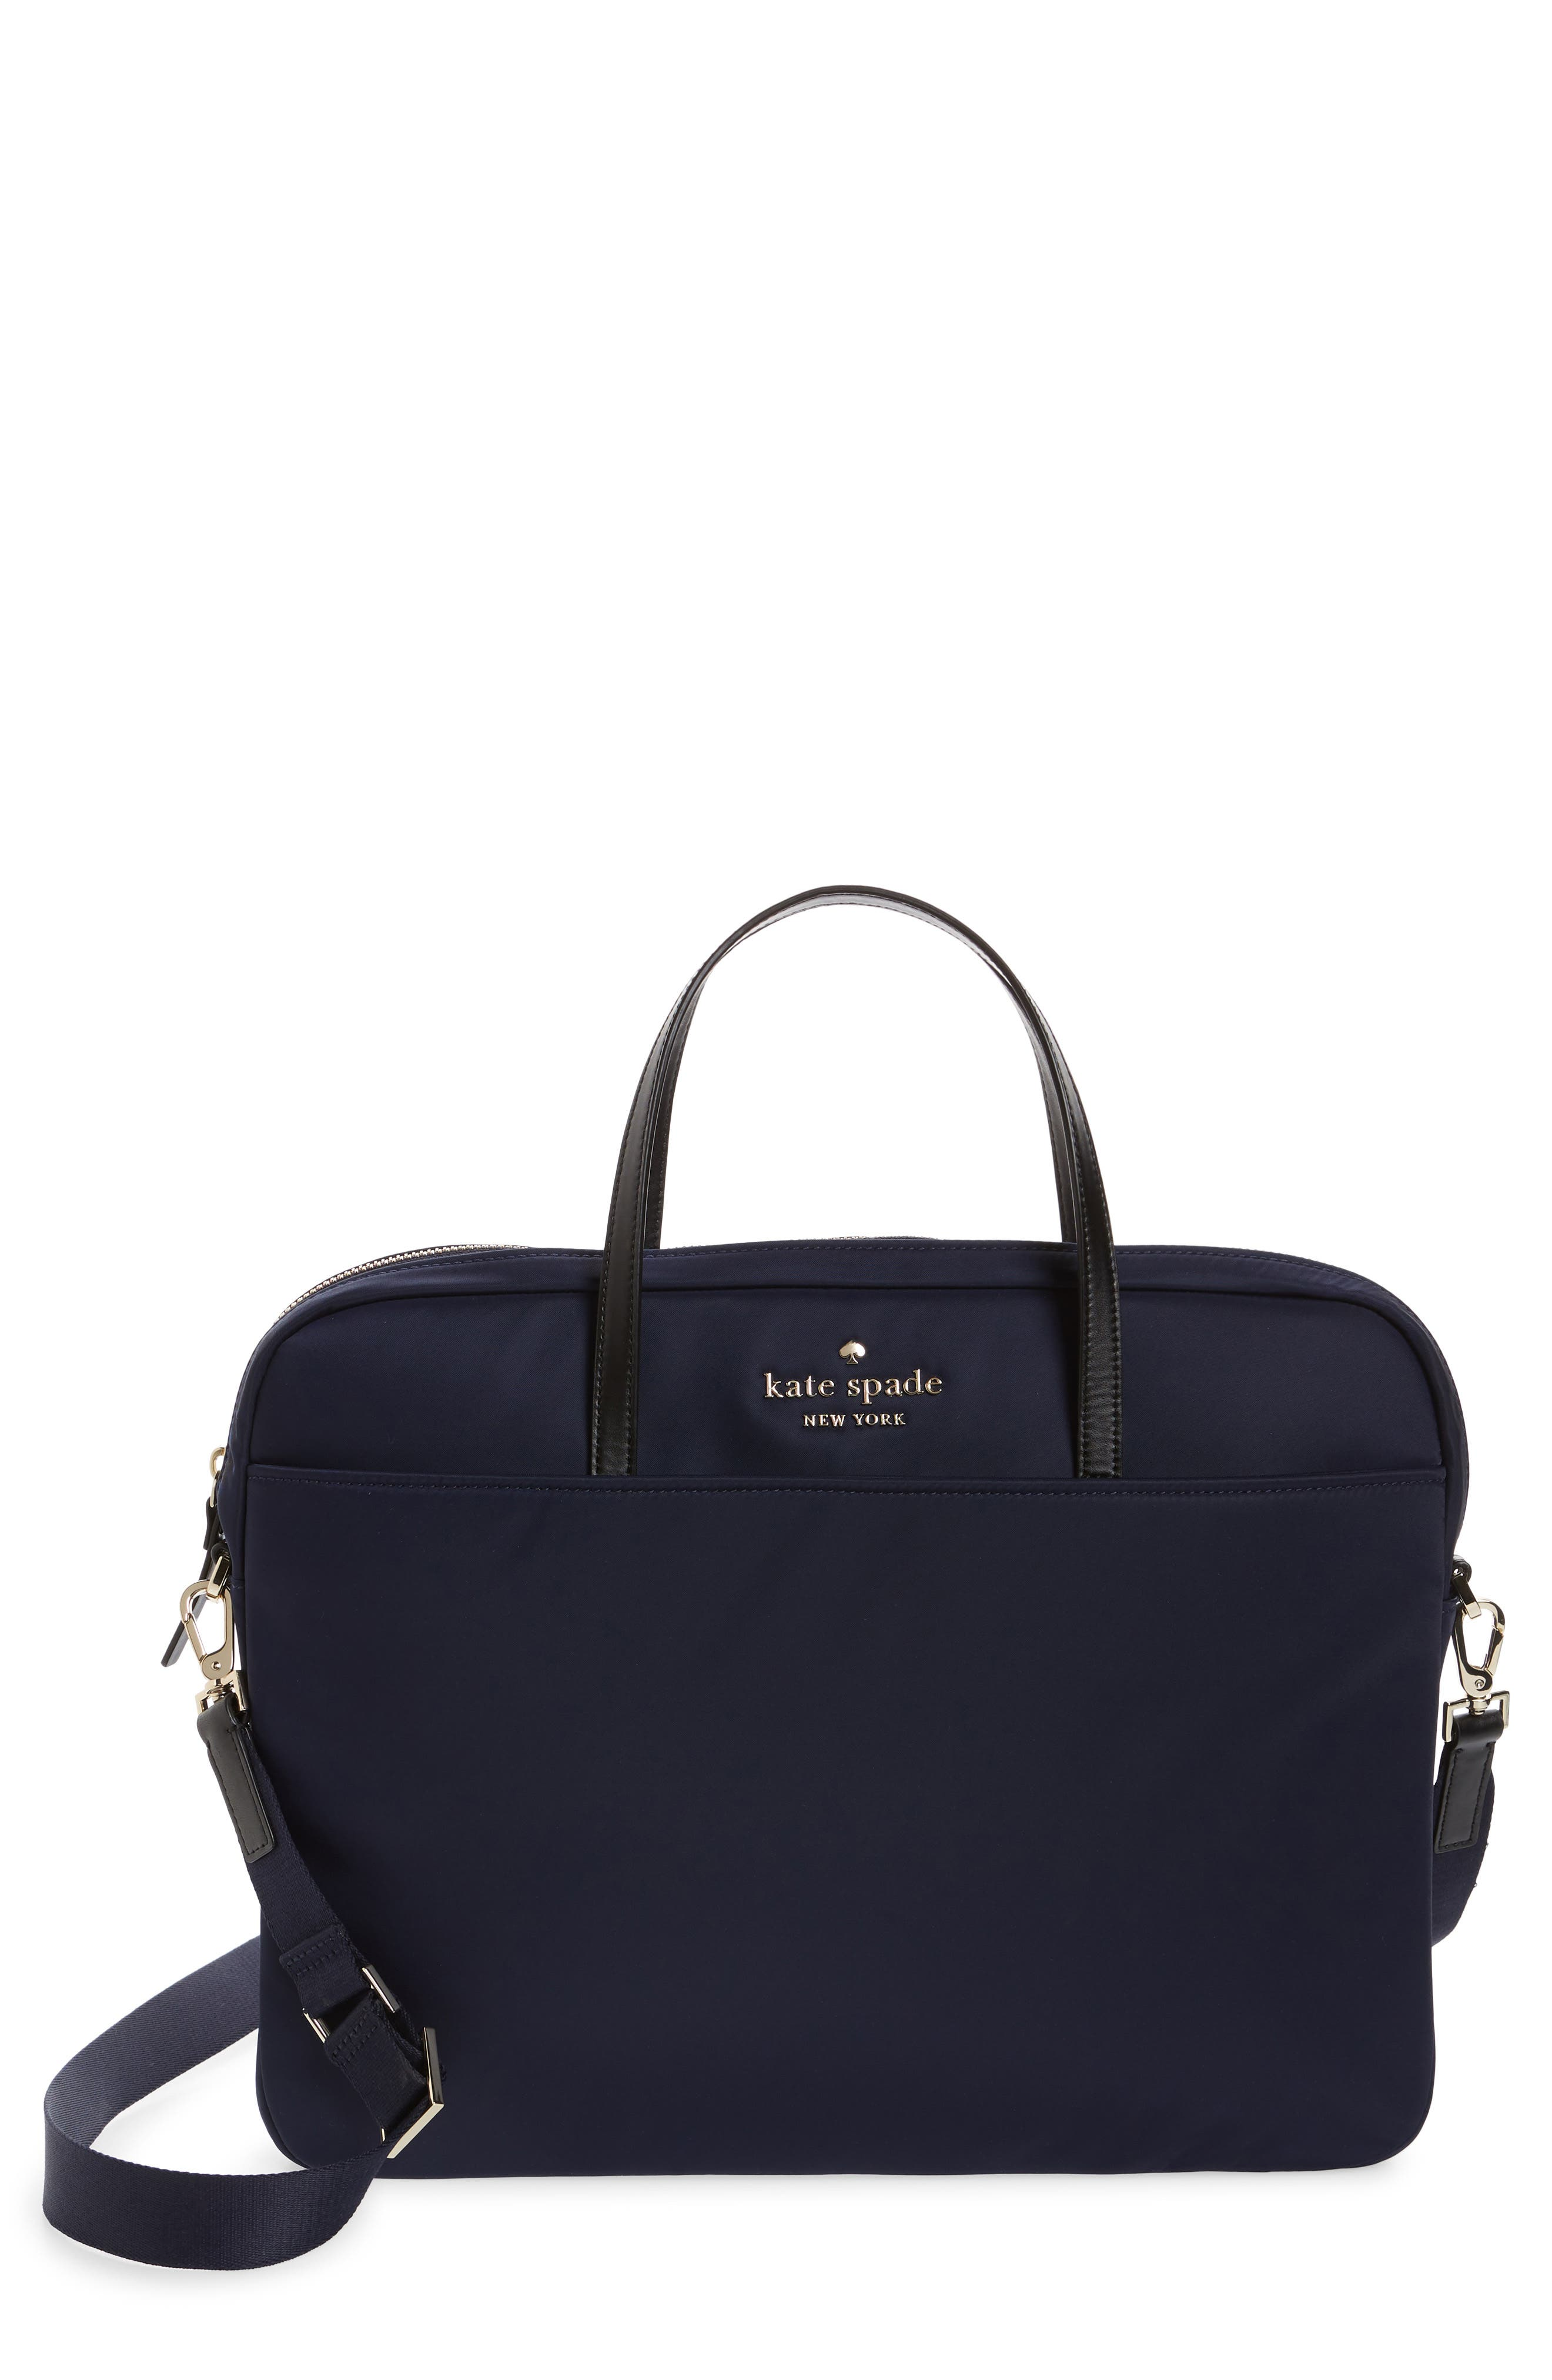 low priced 7143a 7a7ad kate spade new york laptop bags | Nordstrom